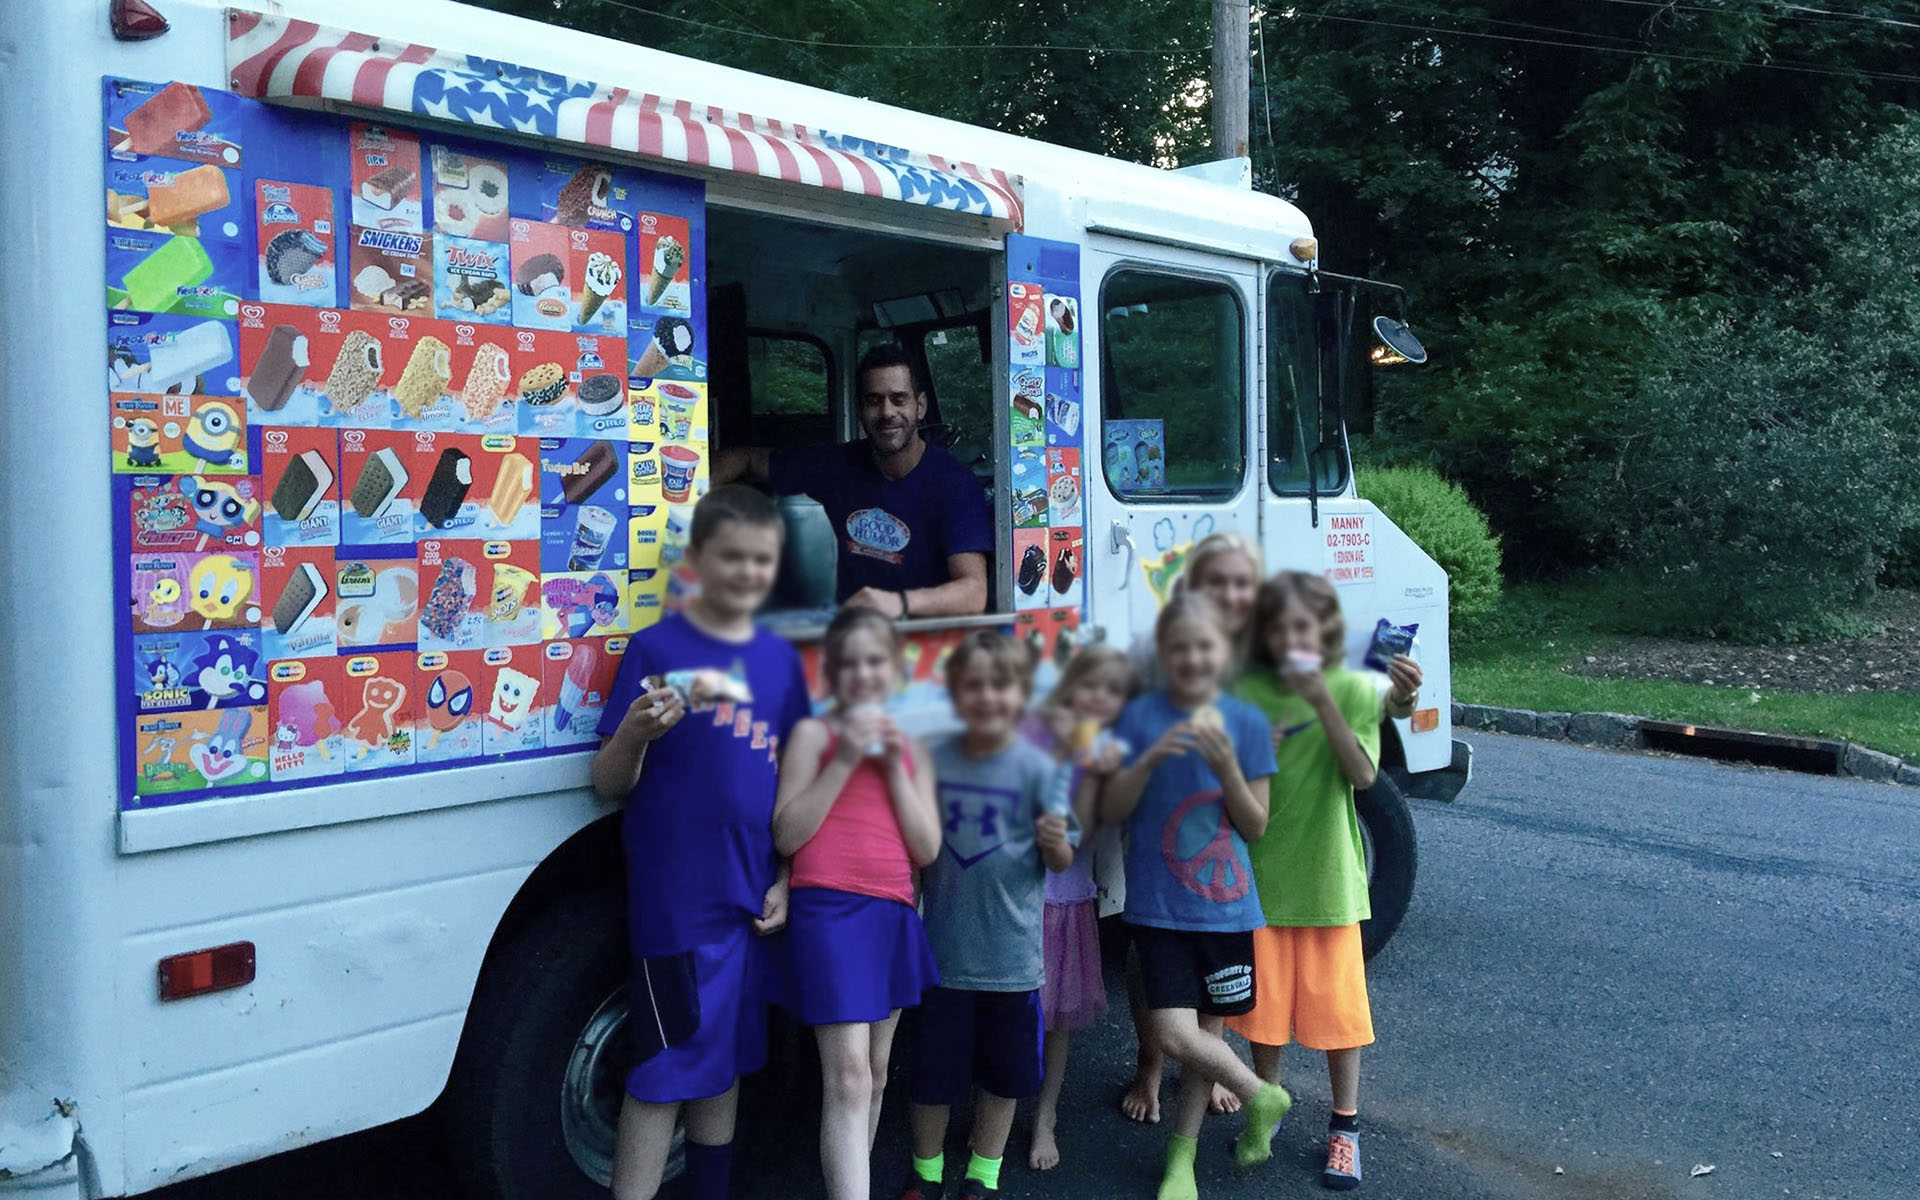 Ice cream for fun truck - New York summer - events - Photo gallery 5